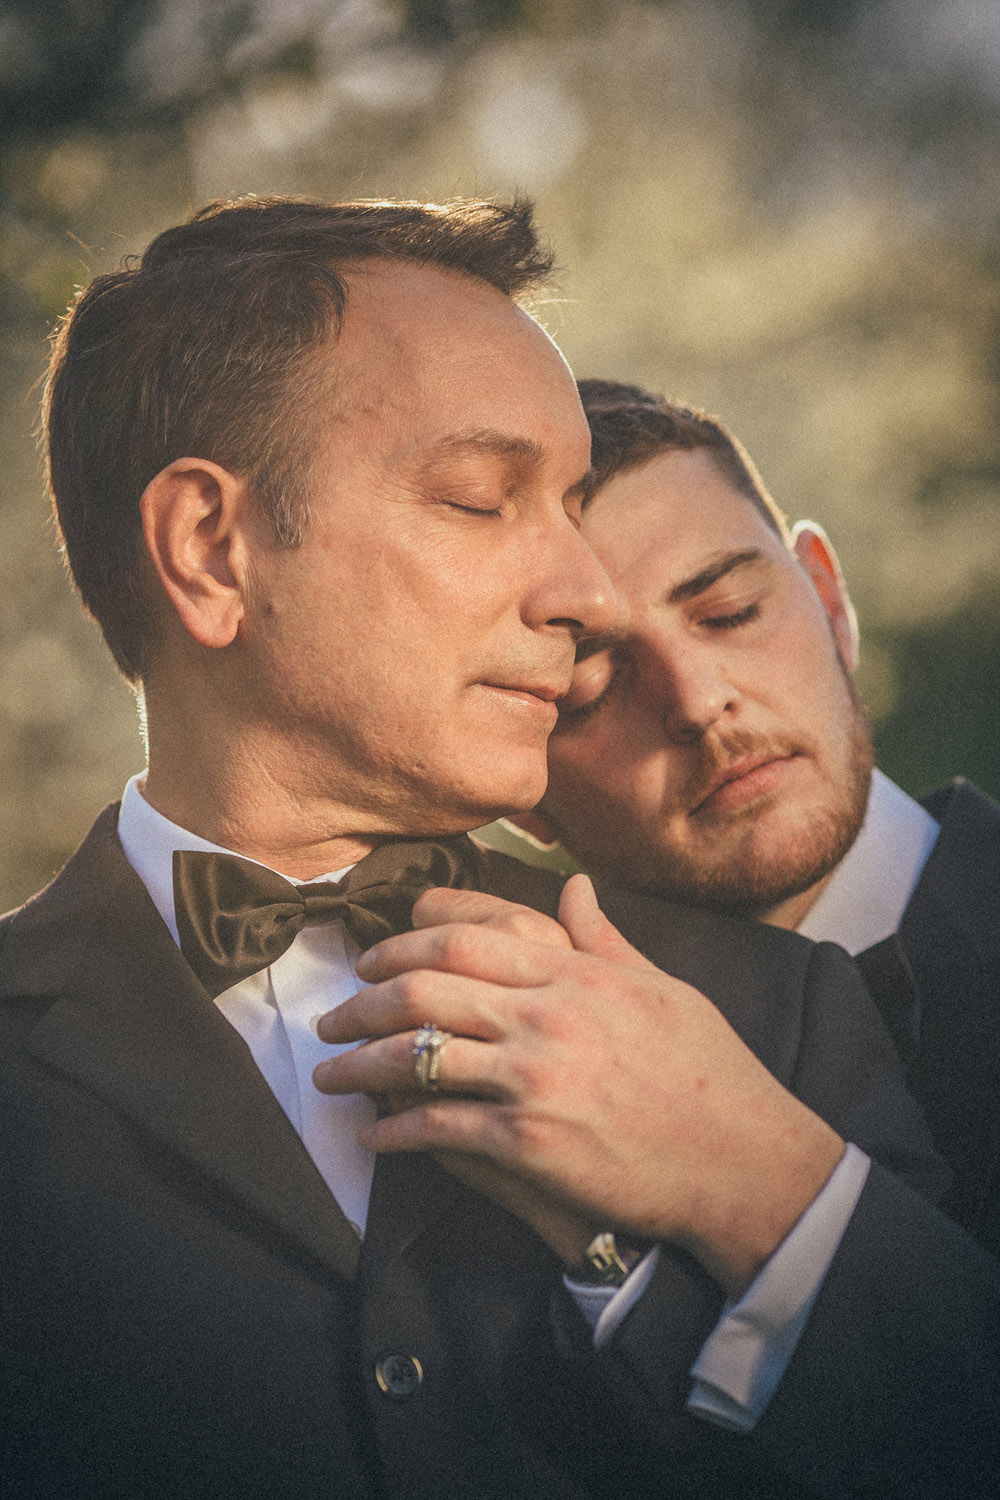 {Same sex wedding photographer Prague} W&G in Prague!